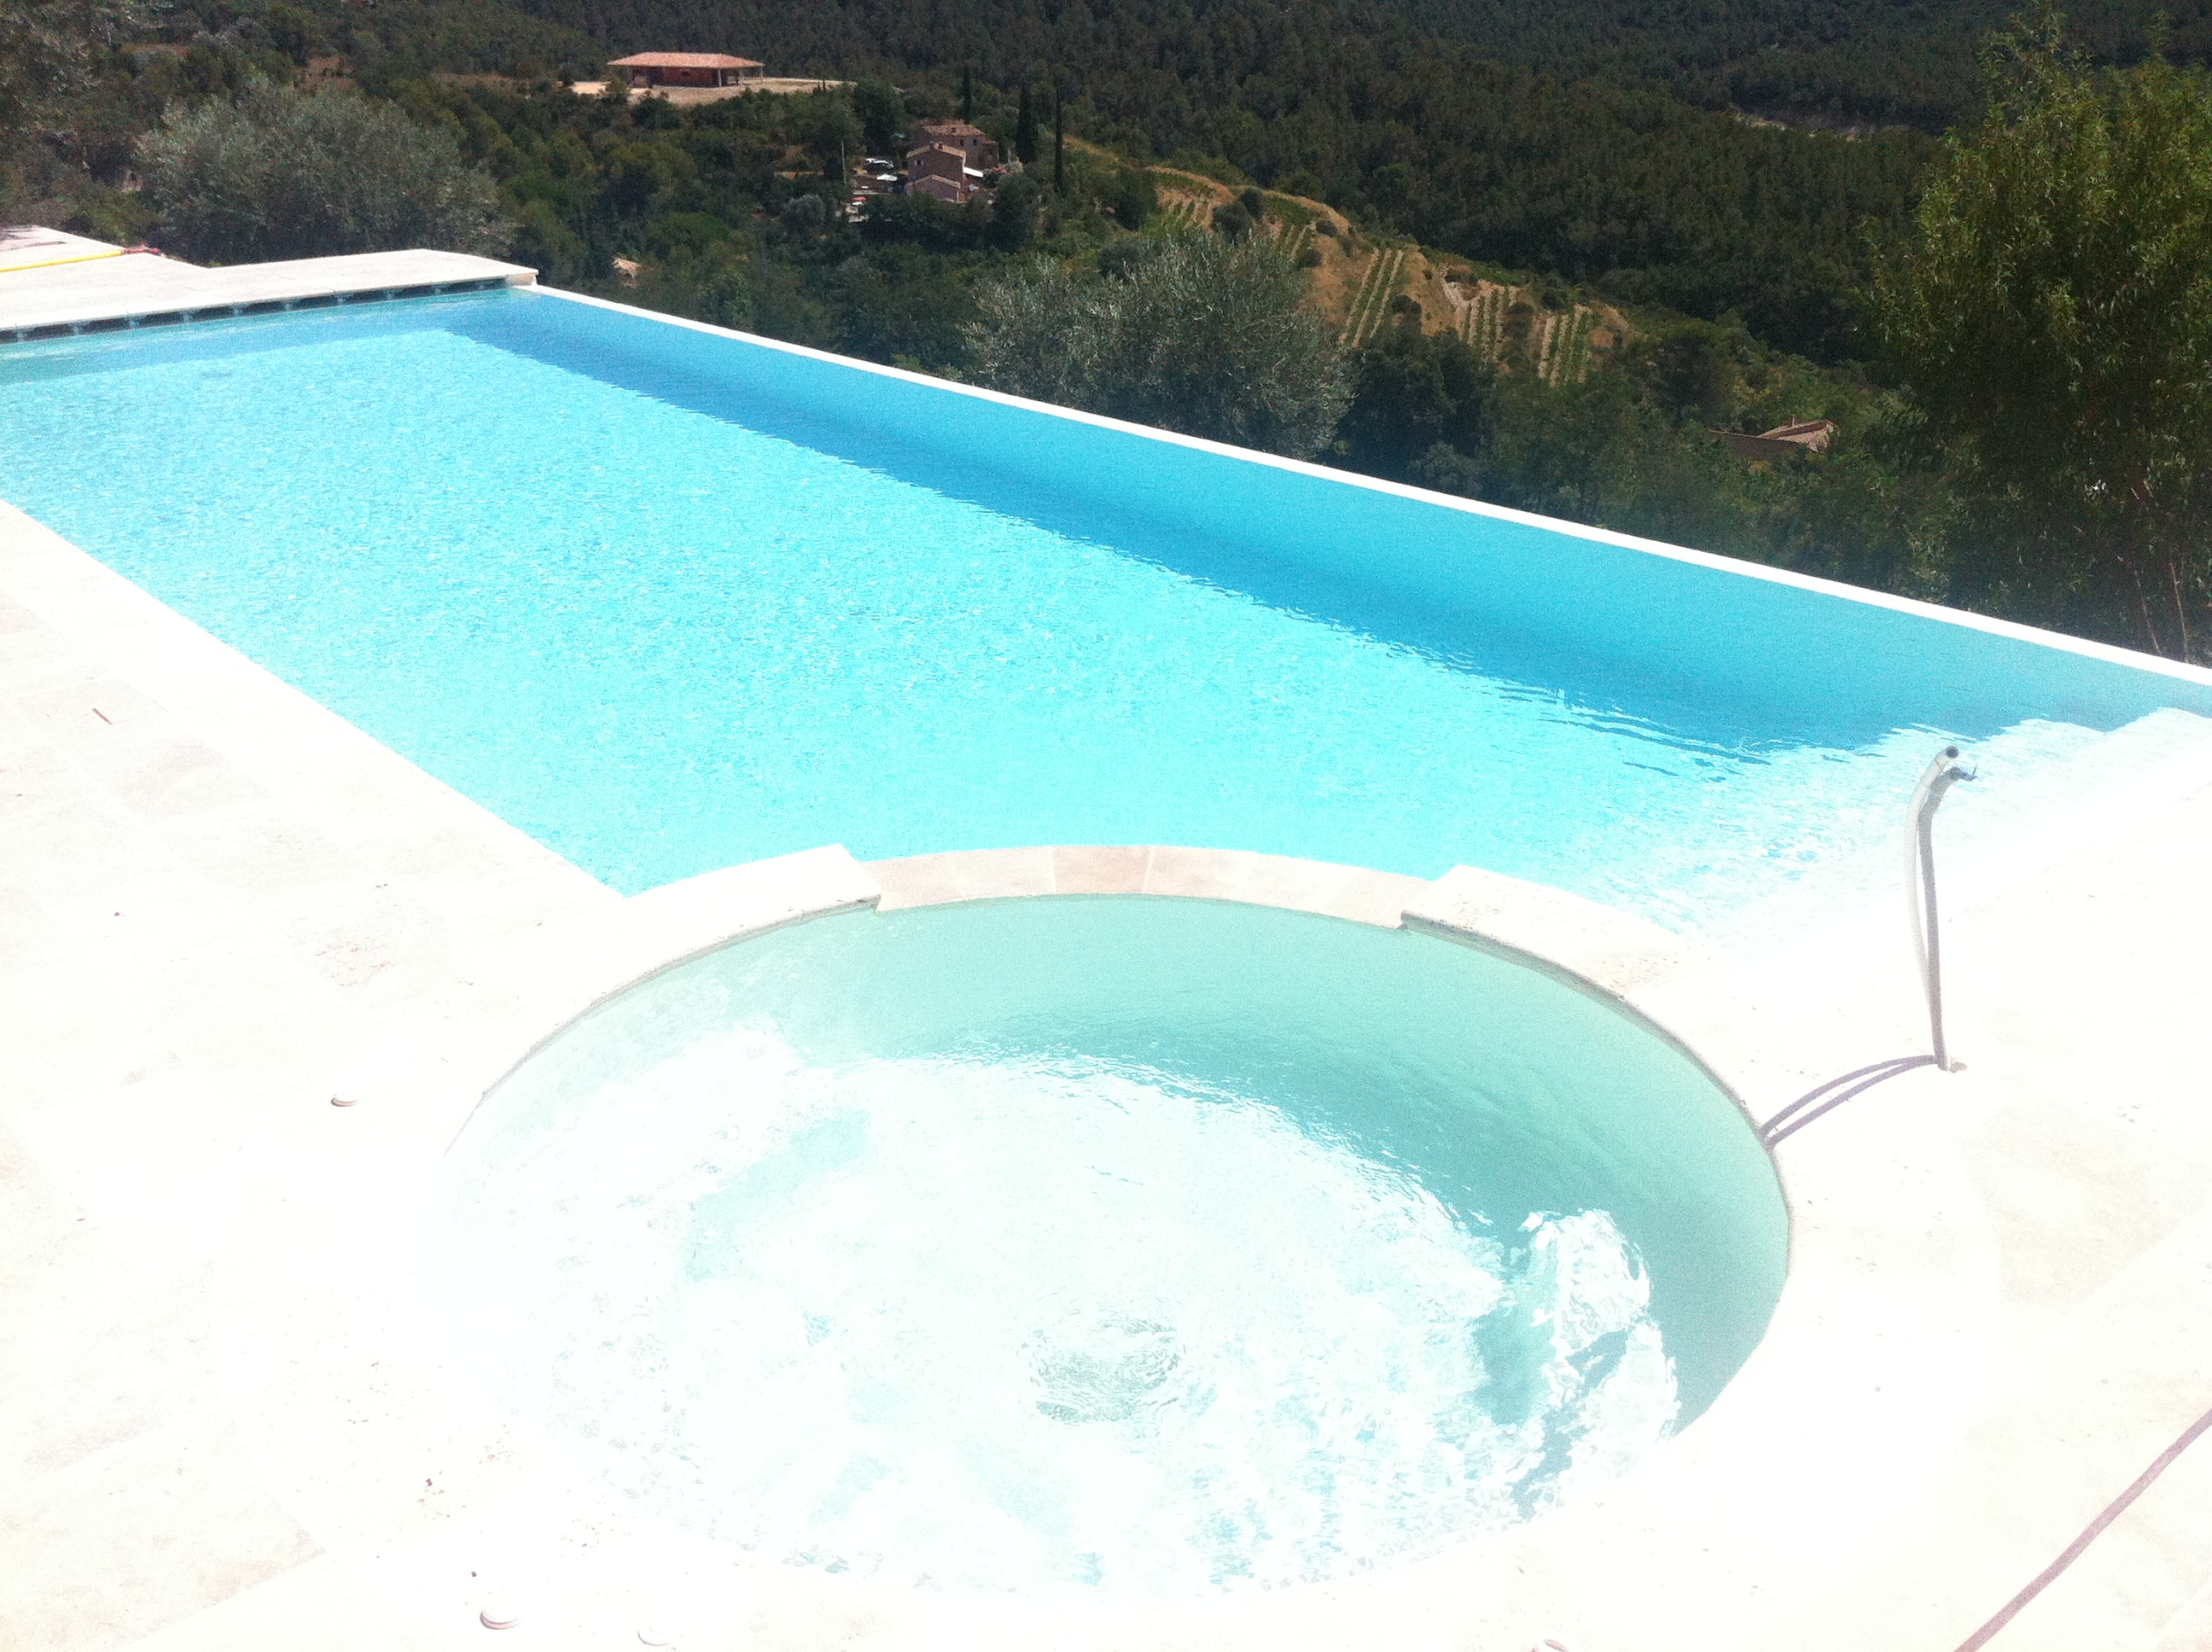 Construire sa piscine sur mesure construction de piscine for Construction piscine